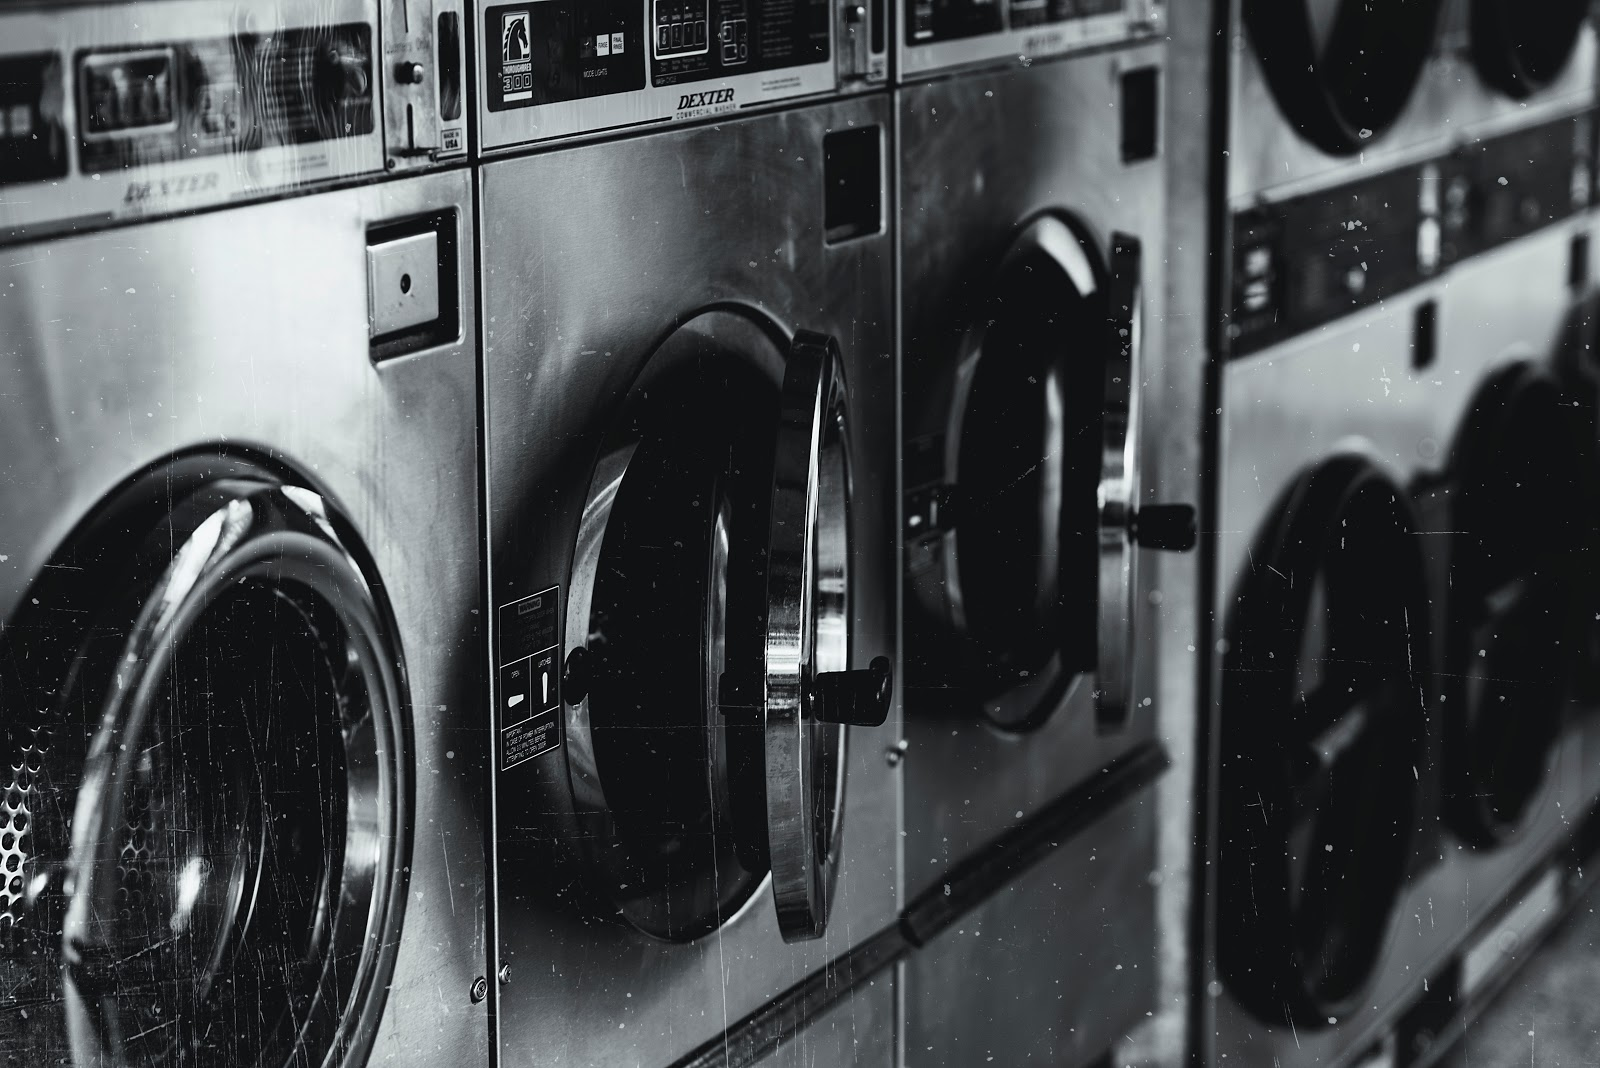 Washing machines in the laundry mat